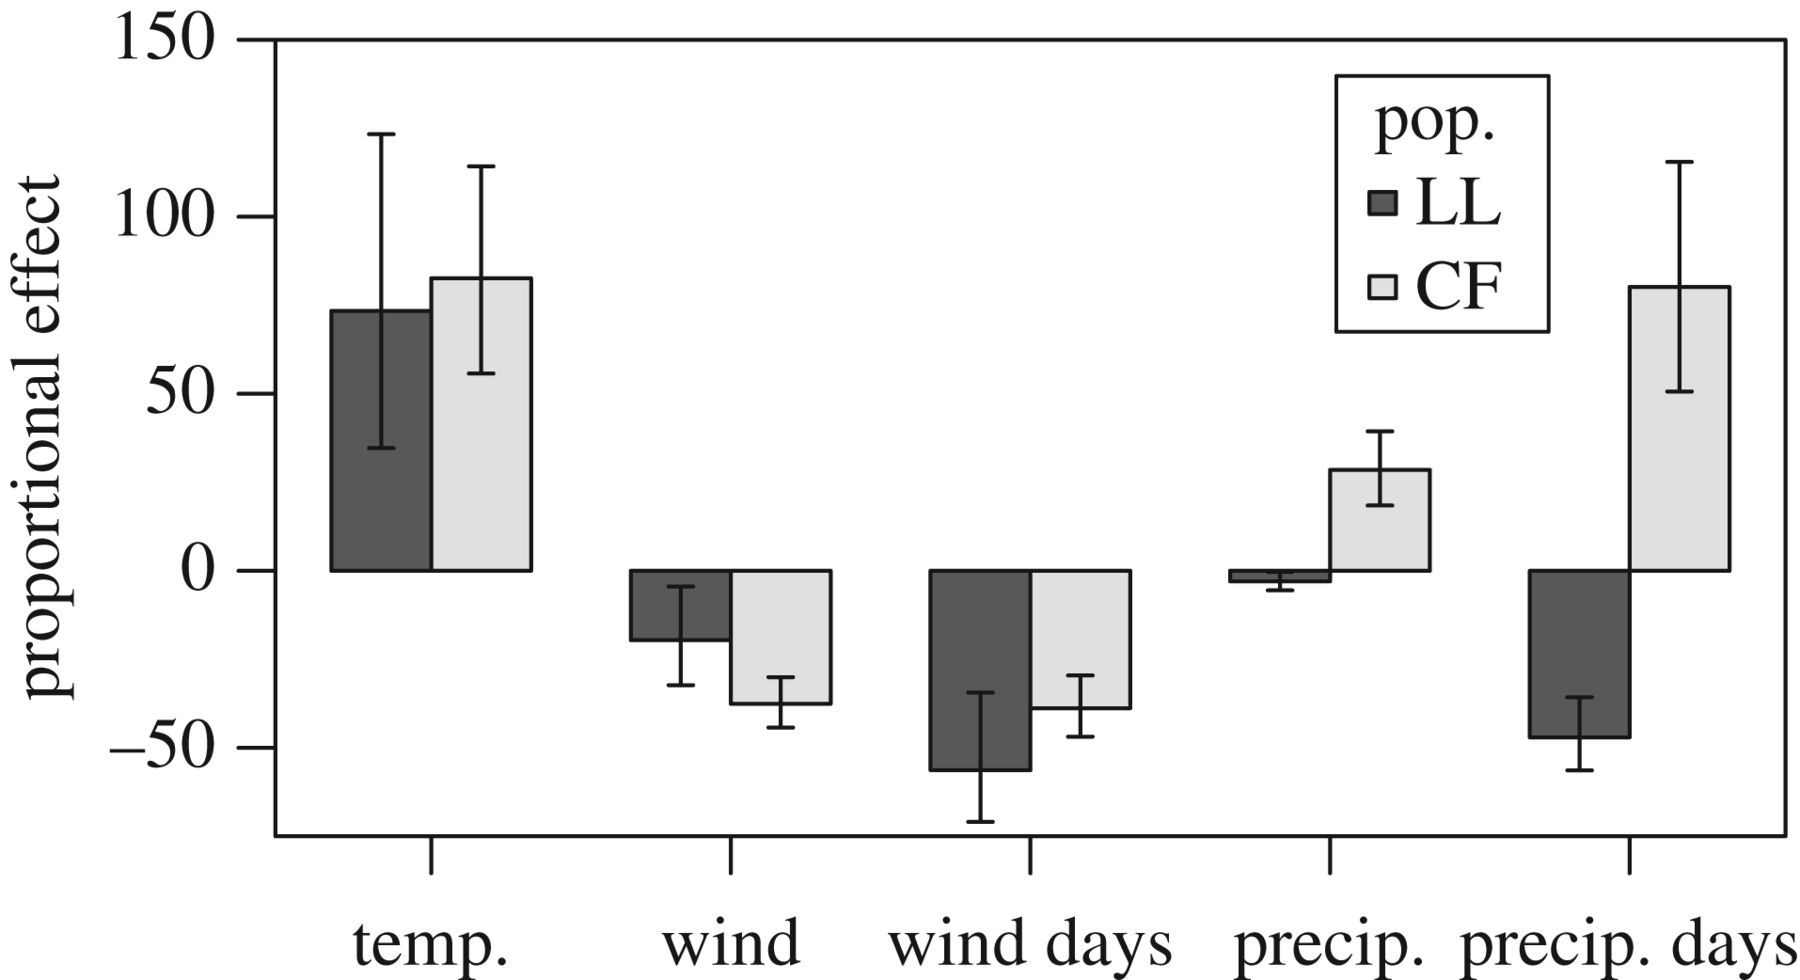 Wind and rain are the primary climate factors driving